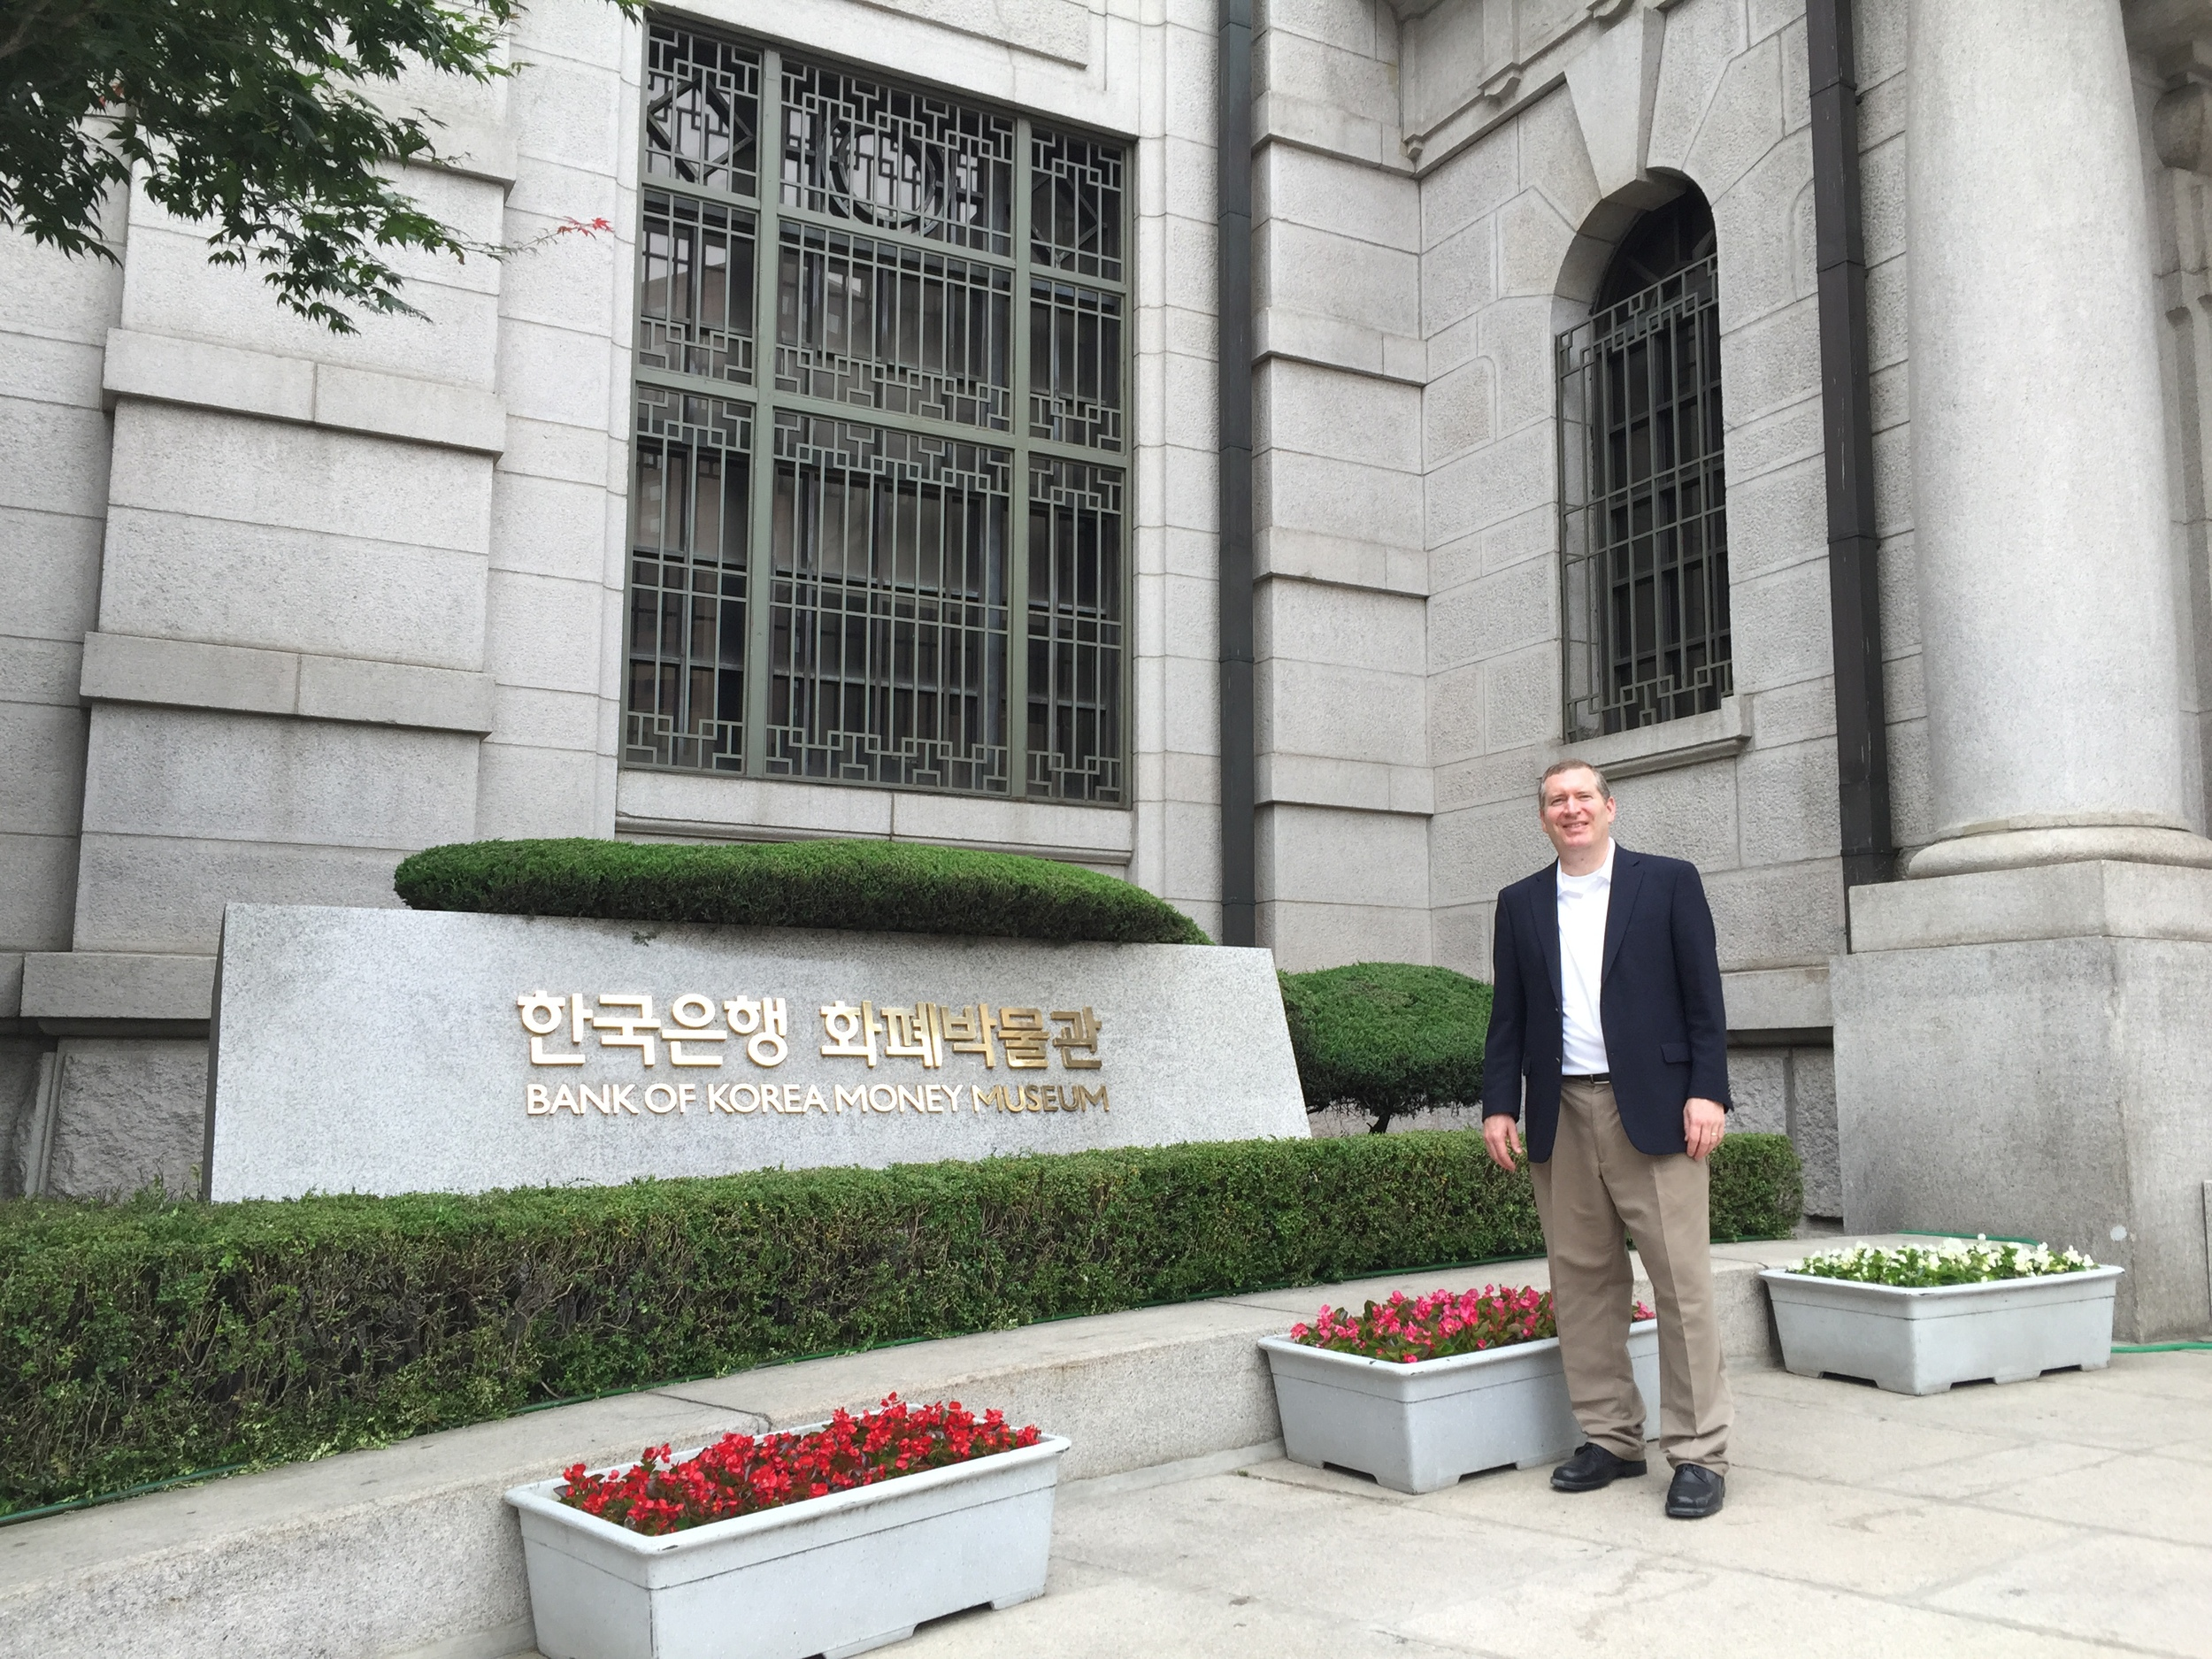 John Lunt at the Bank of Korea Money Museum